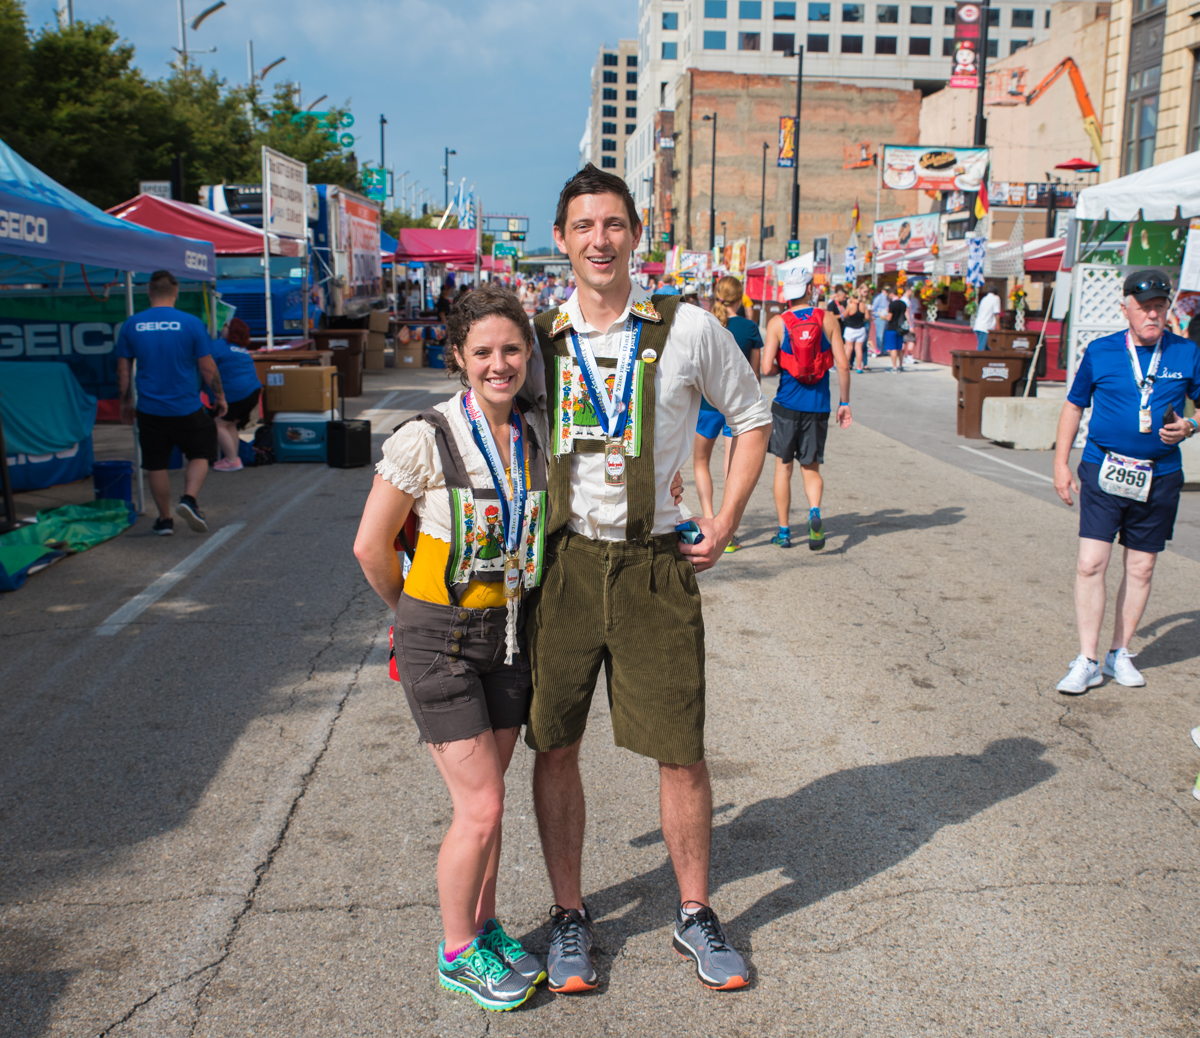 People: Jordan and Brad Ellis / Event: Oktoberfest Zinzinnati / Image: Sherry Lachelle Photography / Published: 10.1.17